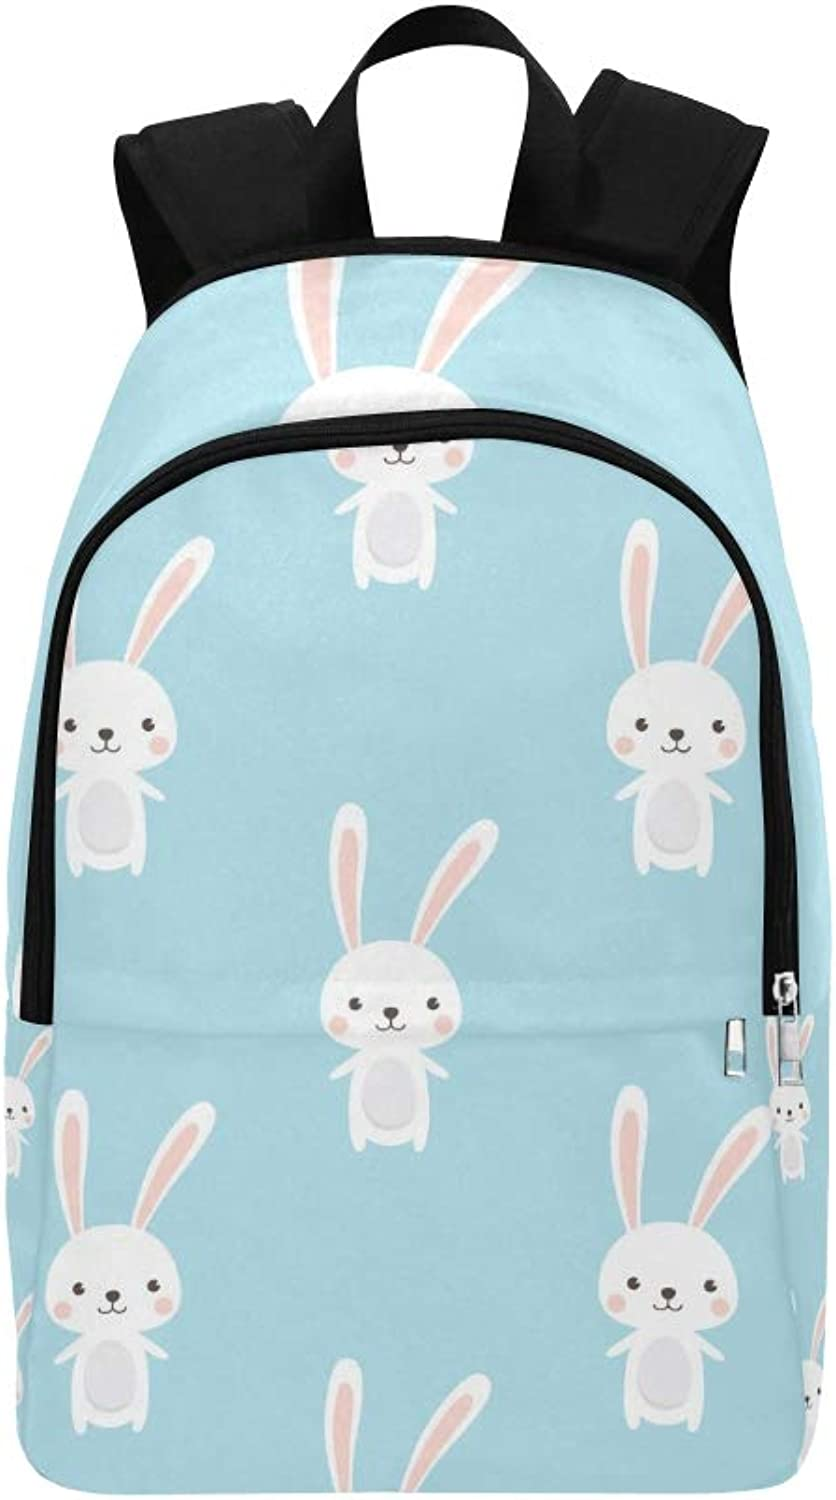 Cute Rabbit Character On Casual Daypack Travel Bag College School Backpack for Mens and Women